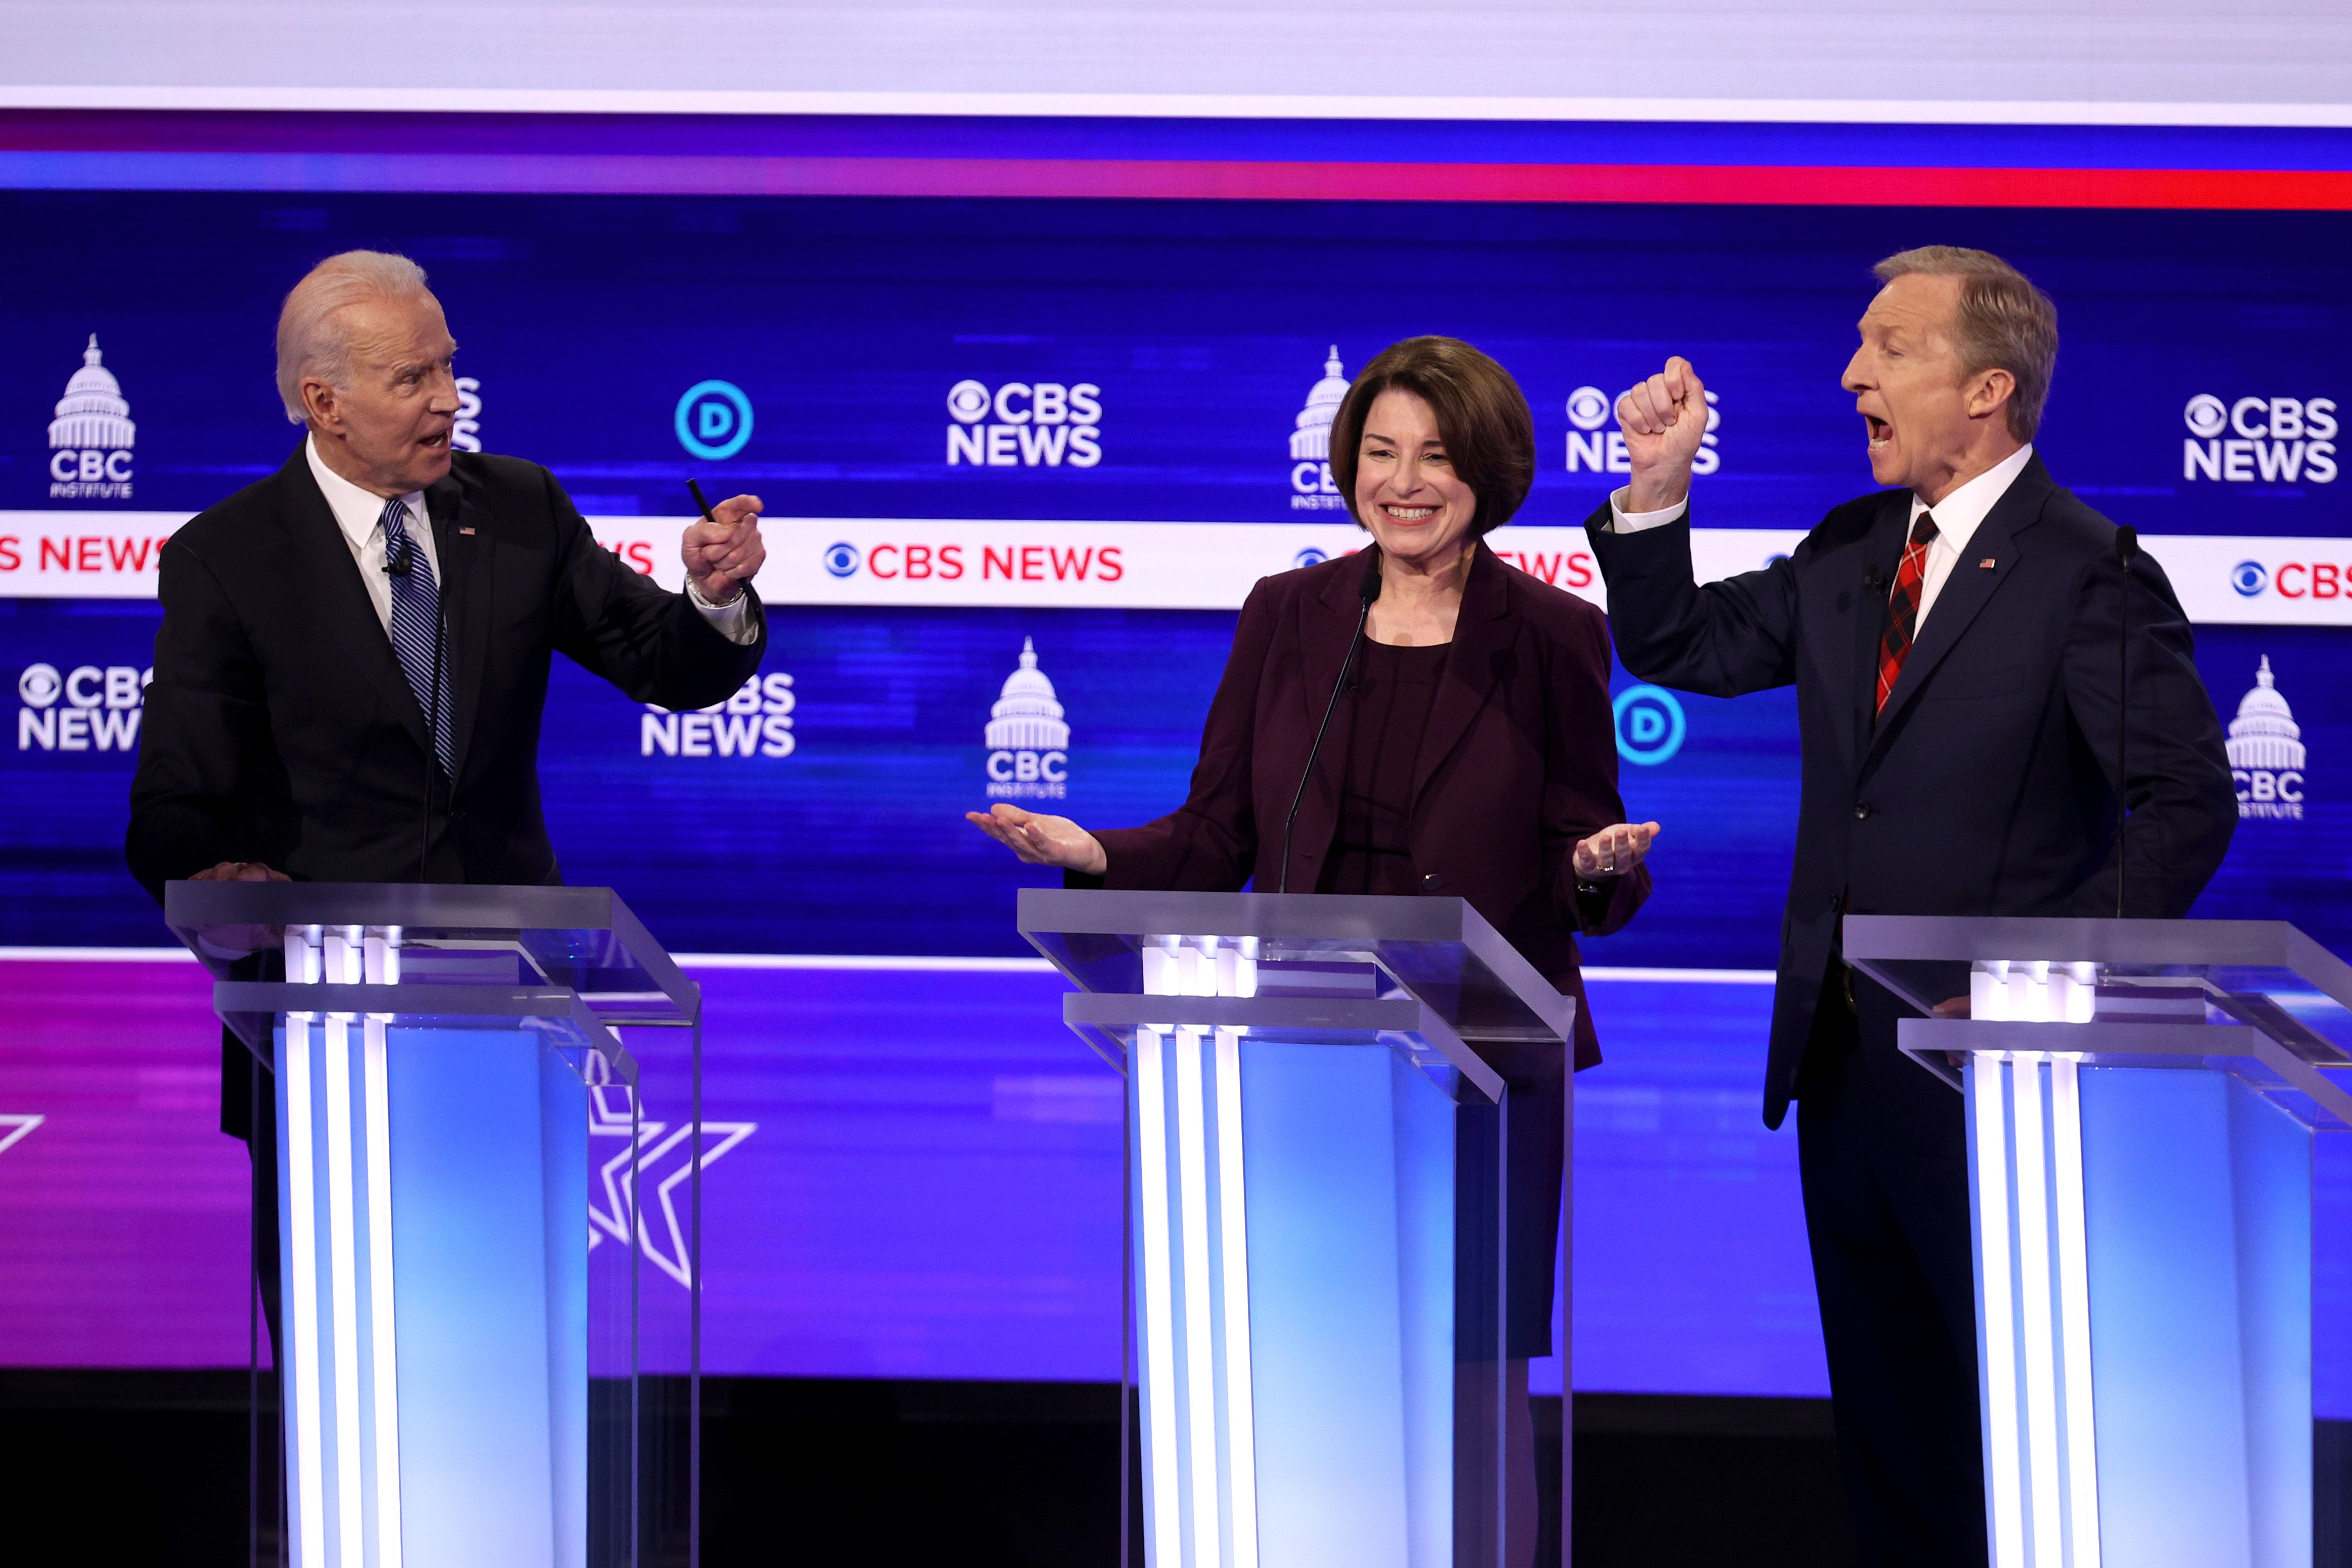 What Makes This Photo of Amy Klobuchar at the South Carolina Democratic Debate So Universal?